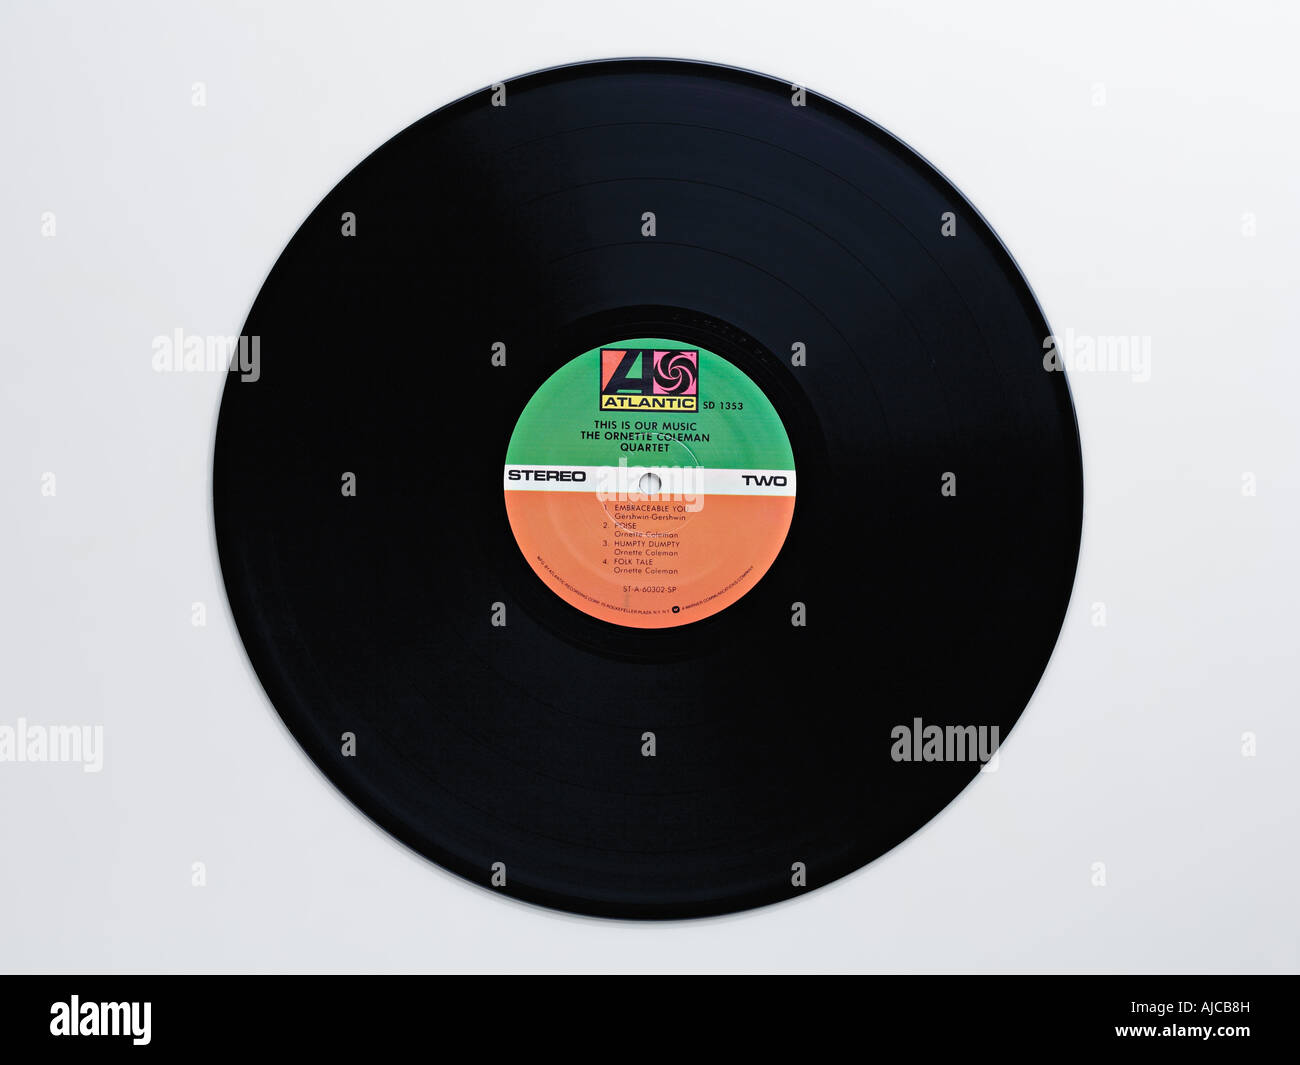 Vinyl record on white background - Ornette Coleman, 'This Is Our Music', released 1960 - Stock Image